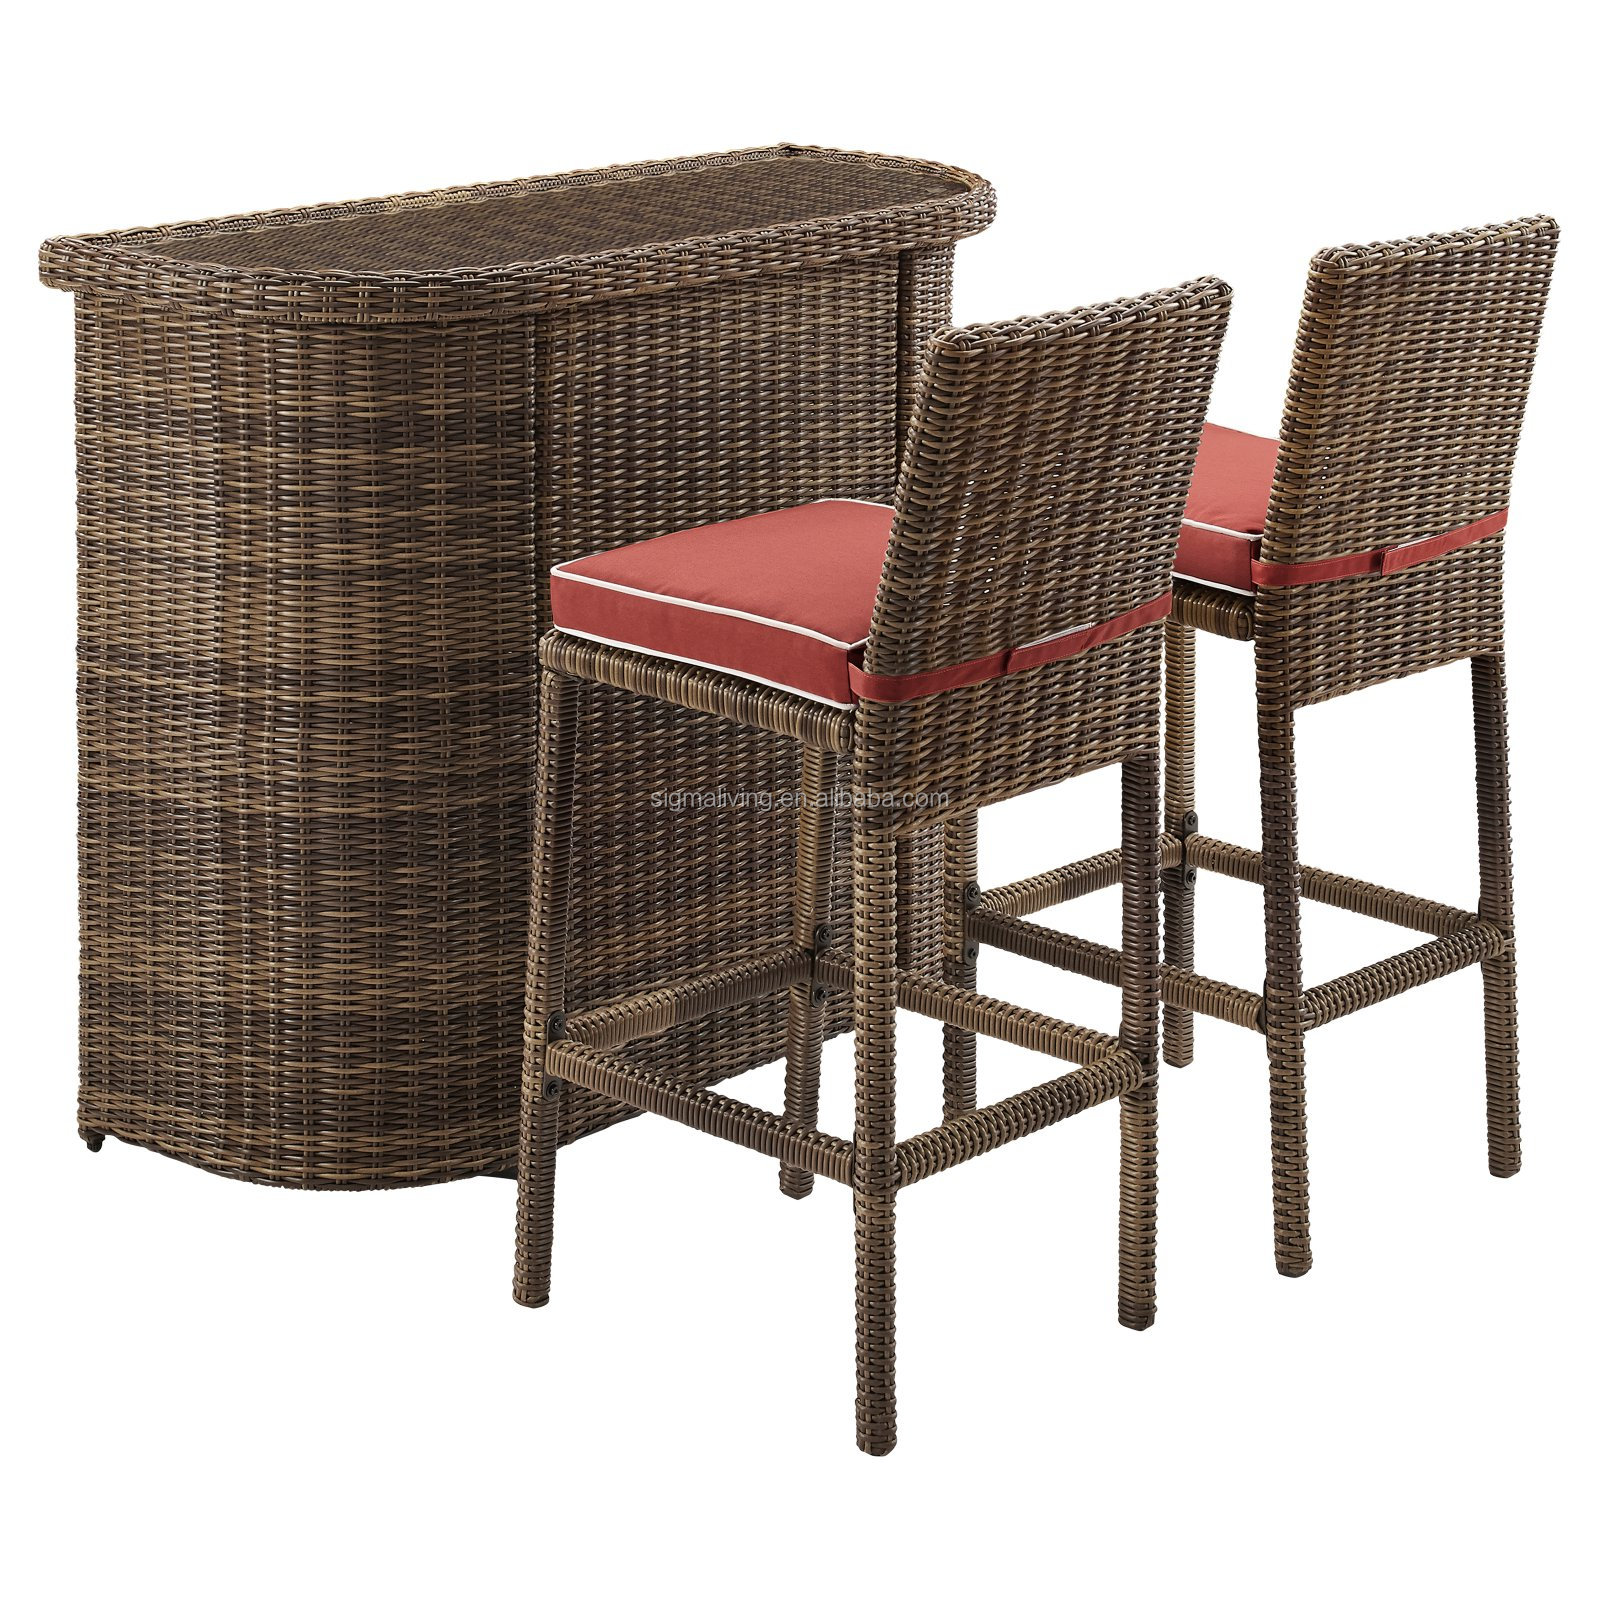 Outdoor wicker patio cube set rattan furniture outdoor cheap outdoor bar sets